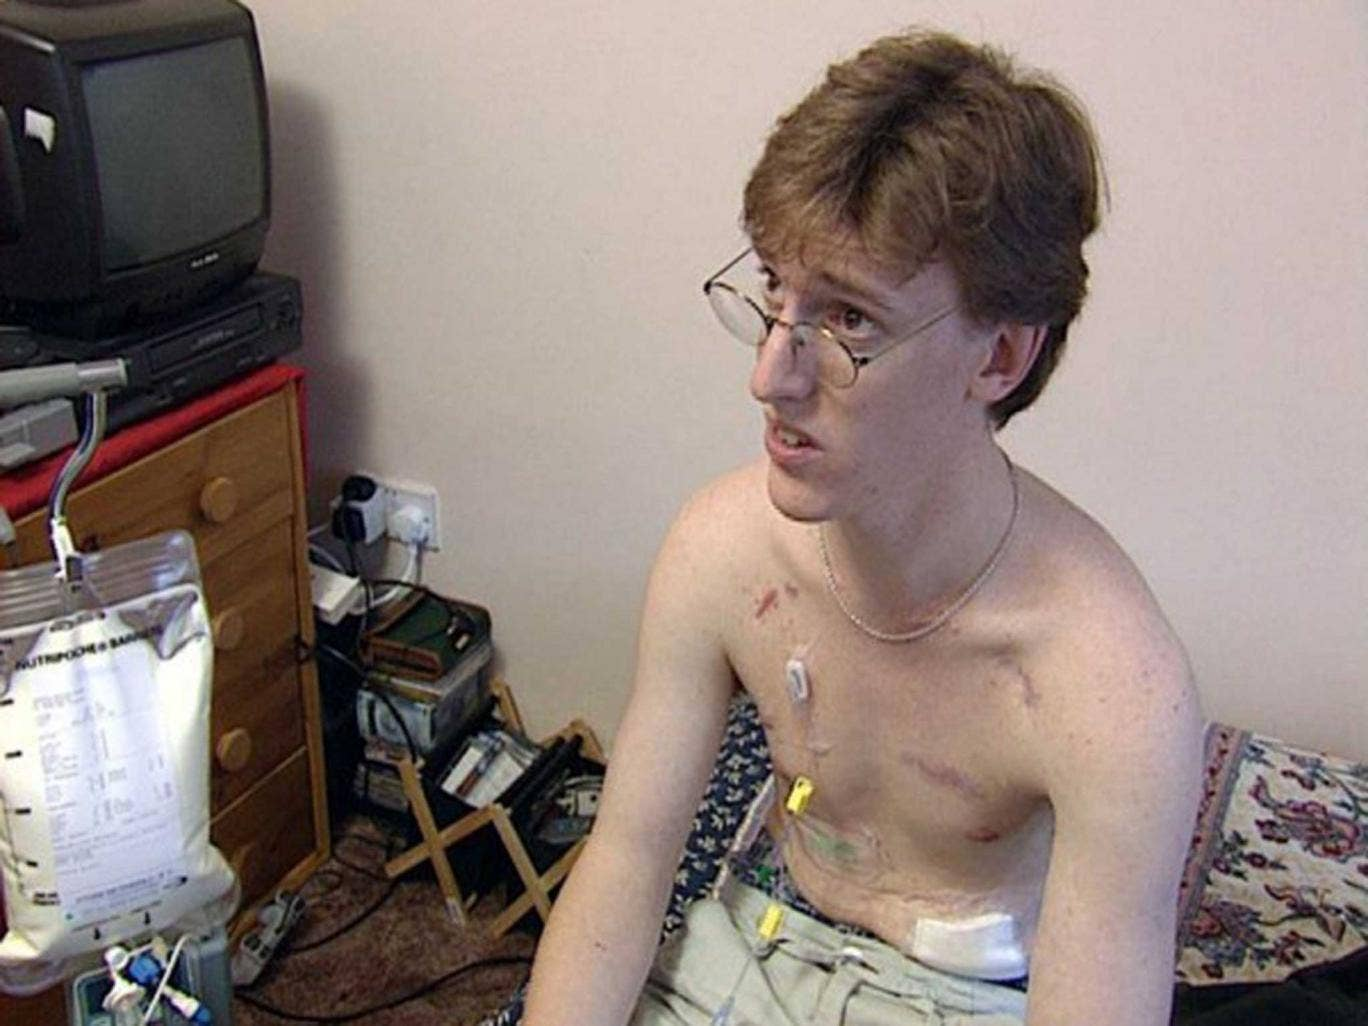 Determined: Danny Bond, seen here in 2001, eventually decided to starve himself to death